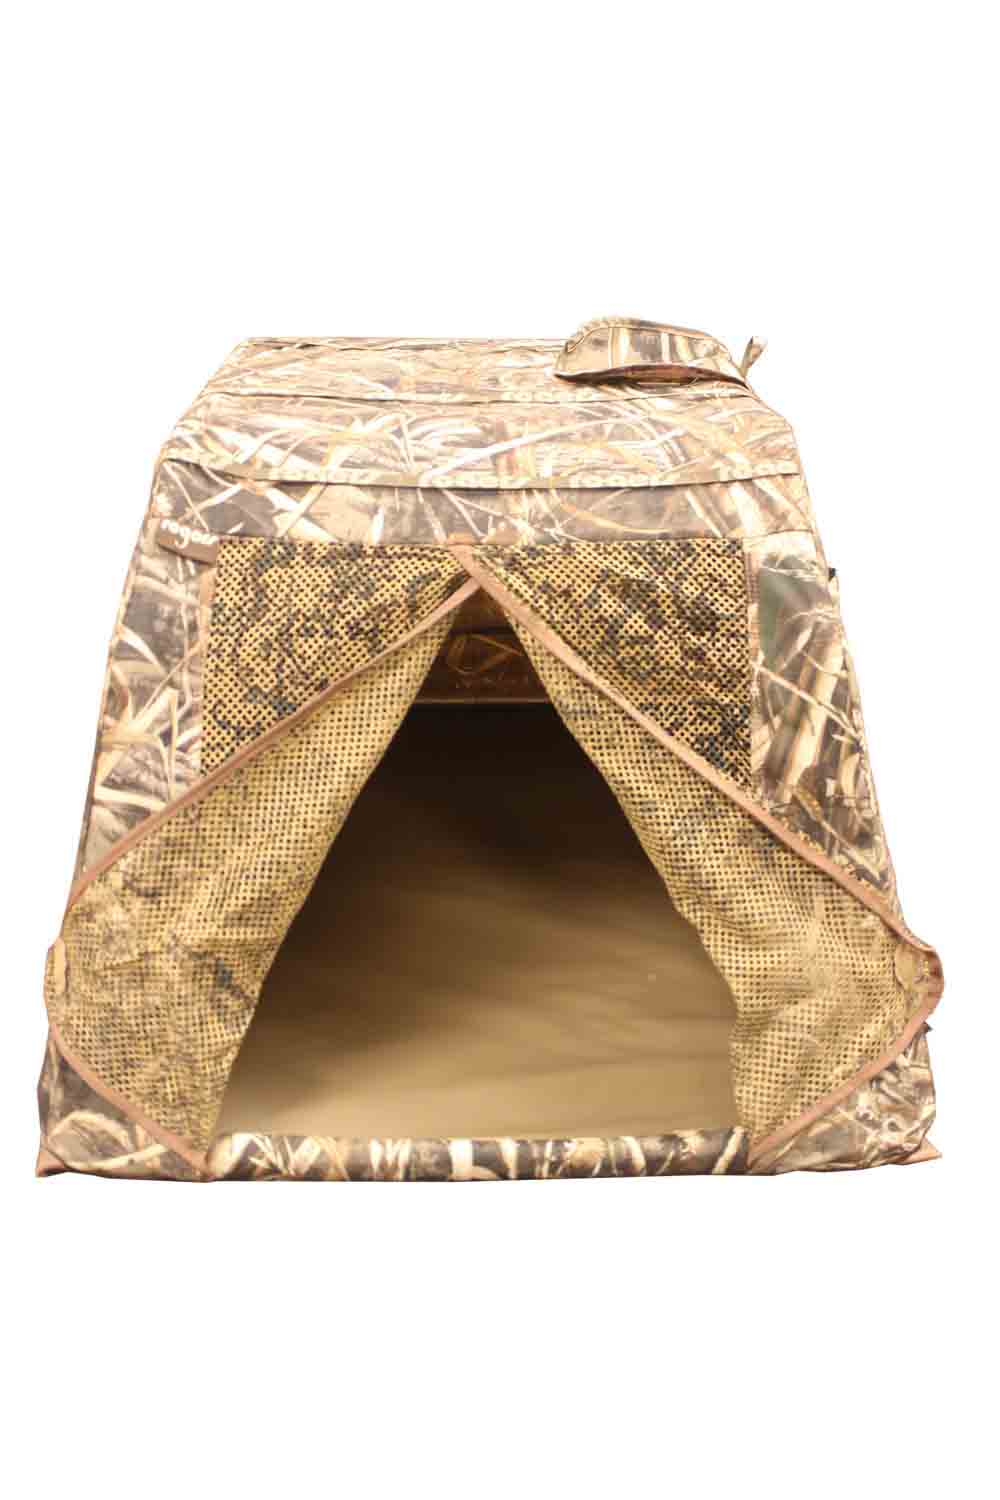 Rogers Pooch Palace XL Dog Blind in Realtree Max 5_2.jpg